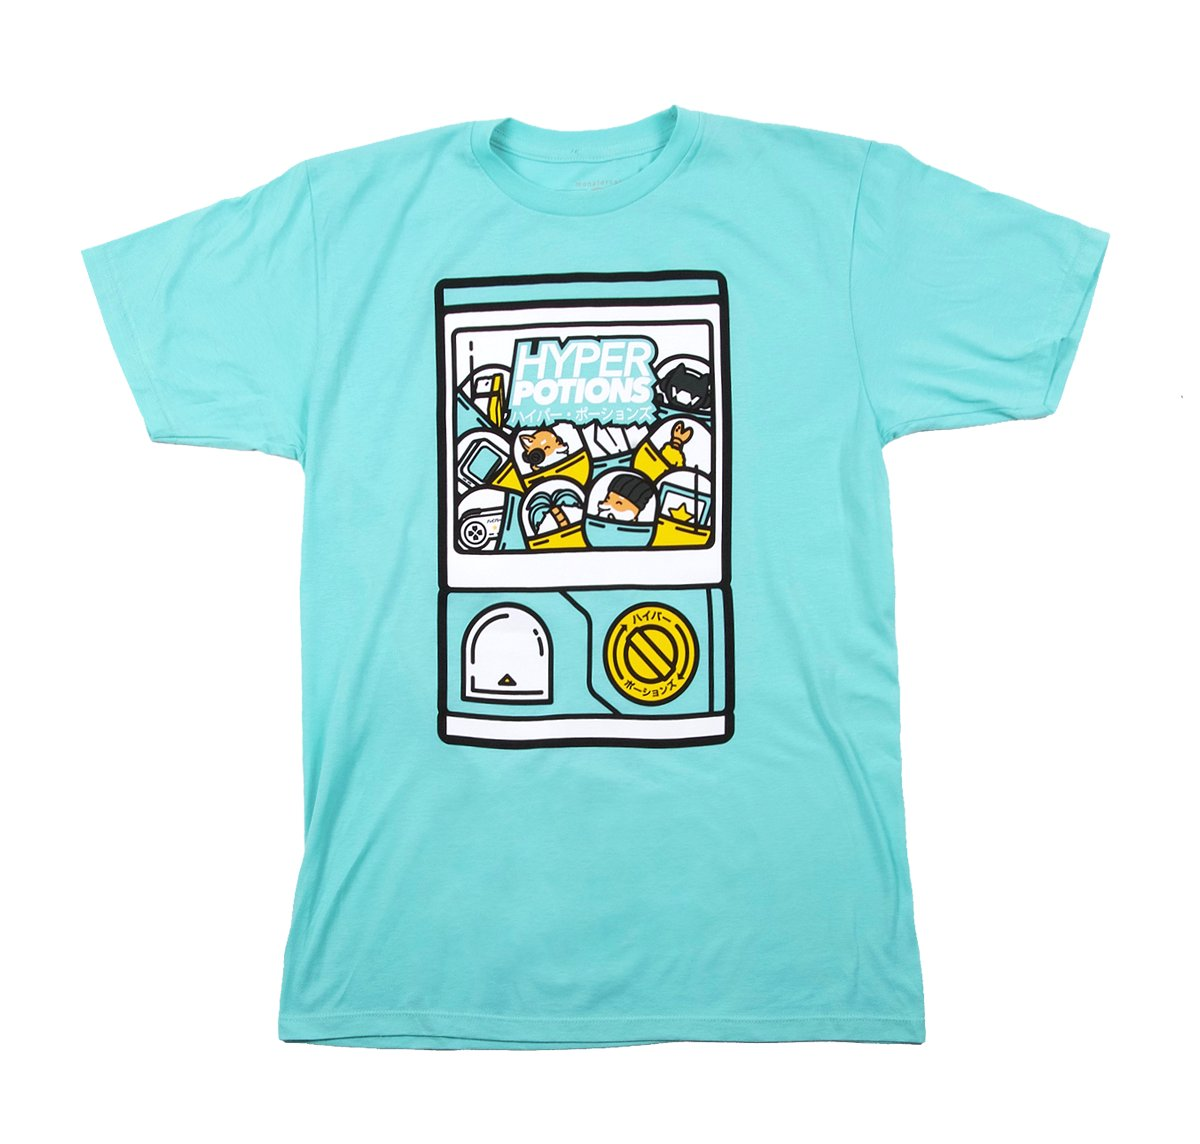 Hyper Potions On Twitter You Can Buy The Shirt Here Httpstco